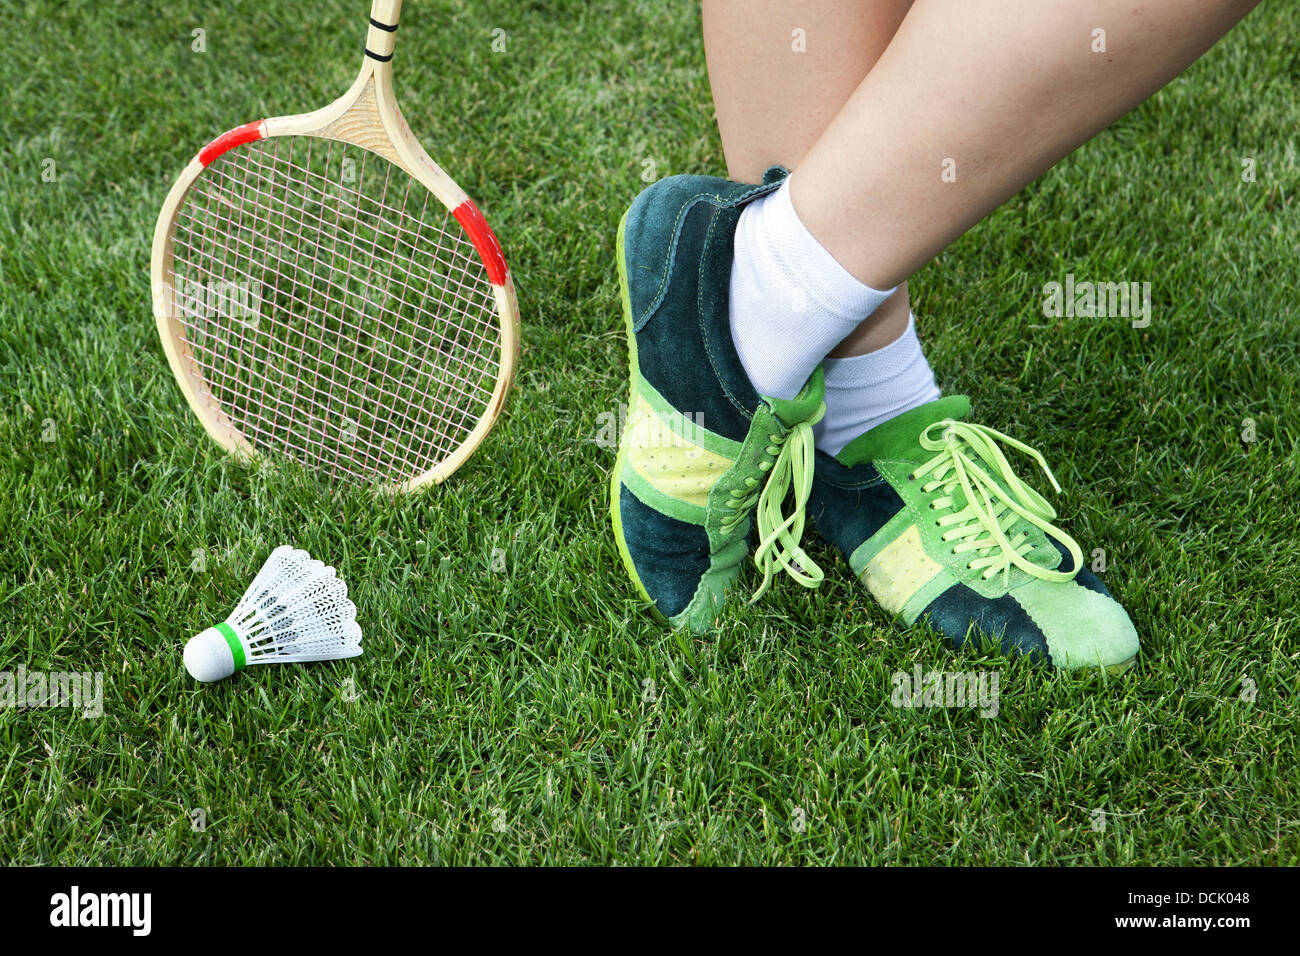 foot of woman who plays badminton on grass - Stock Image